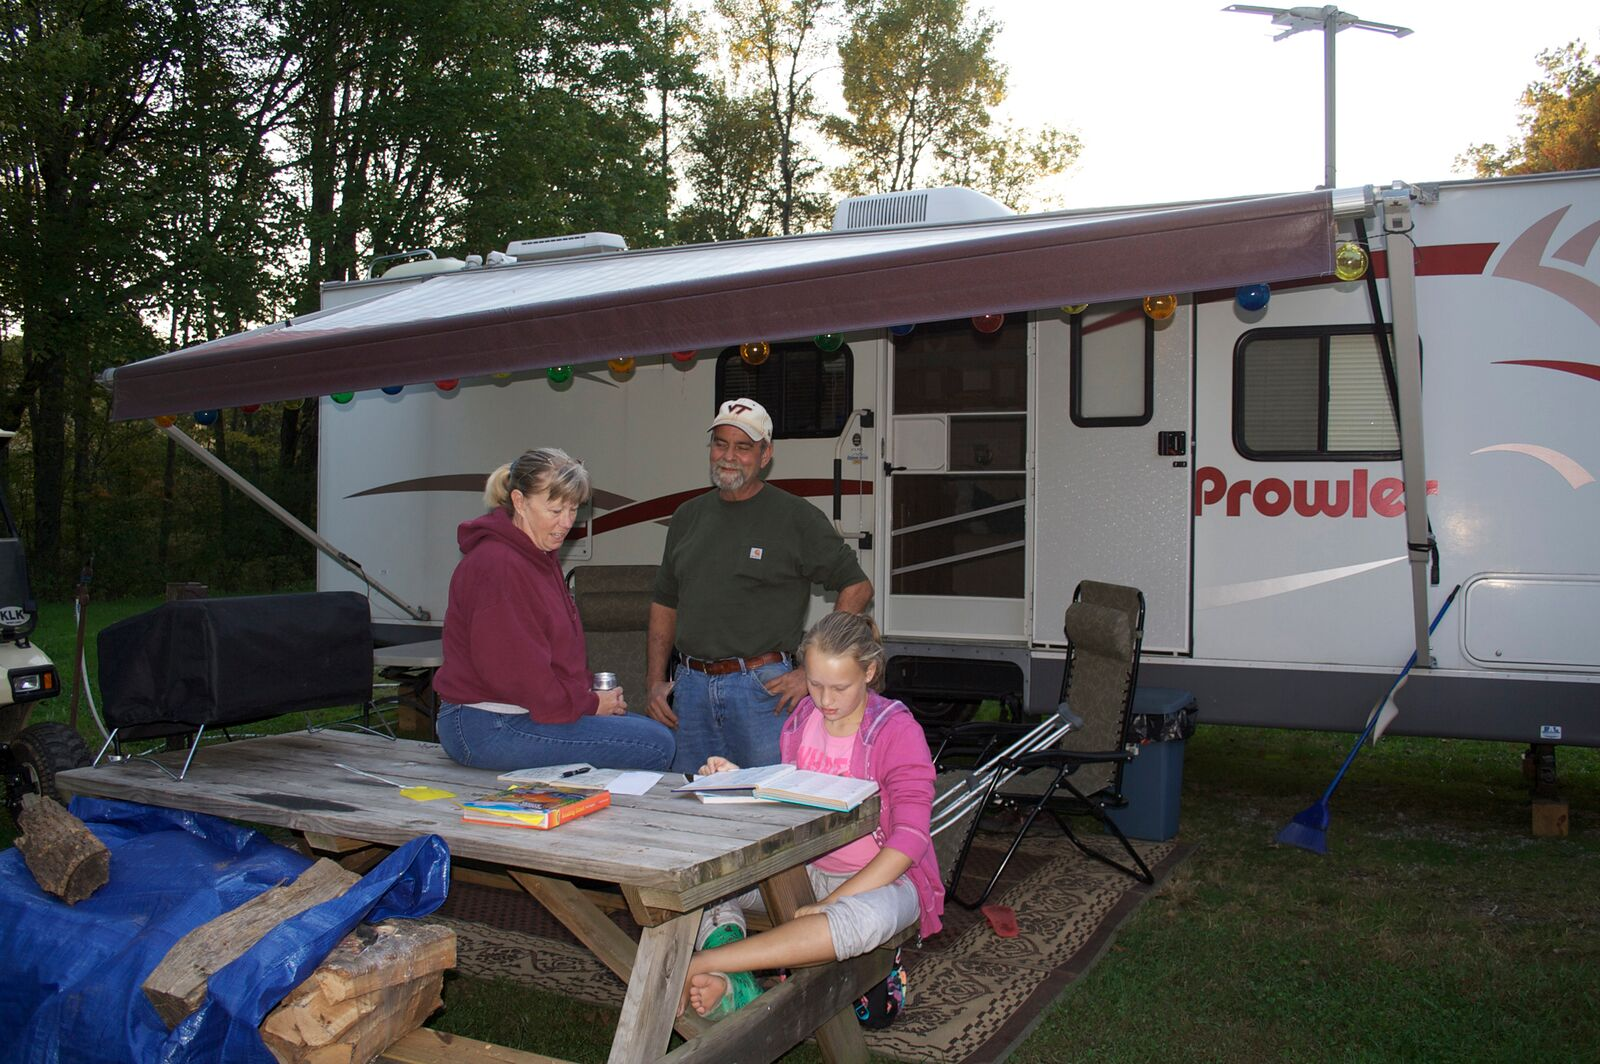 Cabins Cottages Amp Camping Ace Adventure